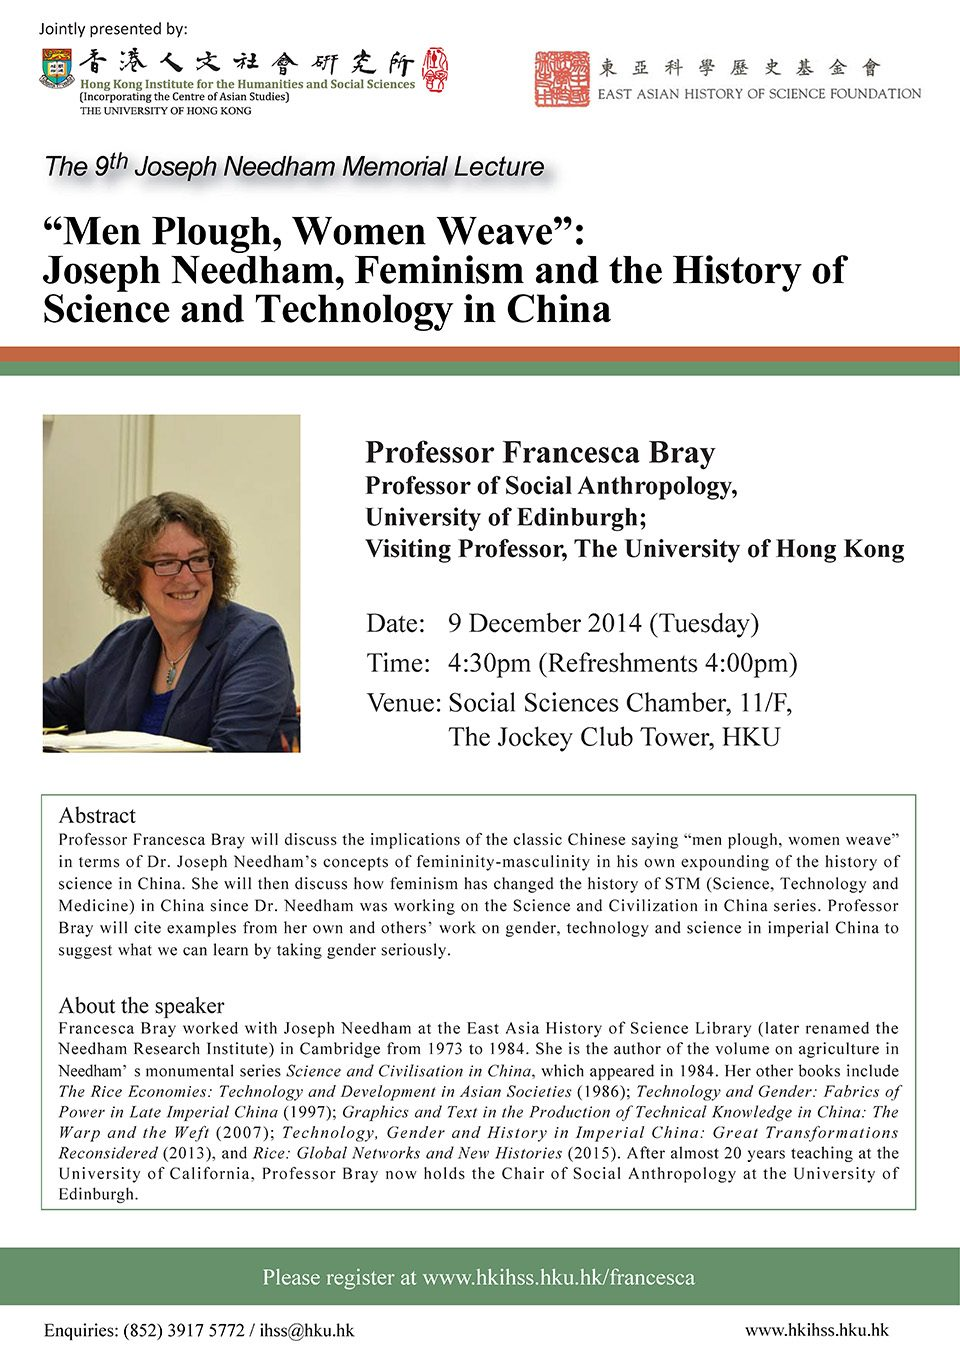 "The Ninth Joseph Needham Memorial Lecture on '""Men plough, women weave"": Joseph Needham, Feminism and the History of Science and Technology in China' by Professor Francesca Bray (December 9, 2014)"